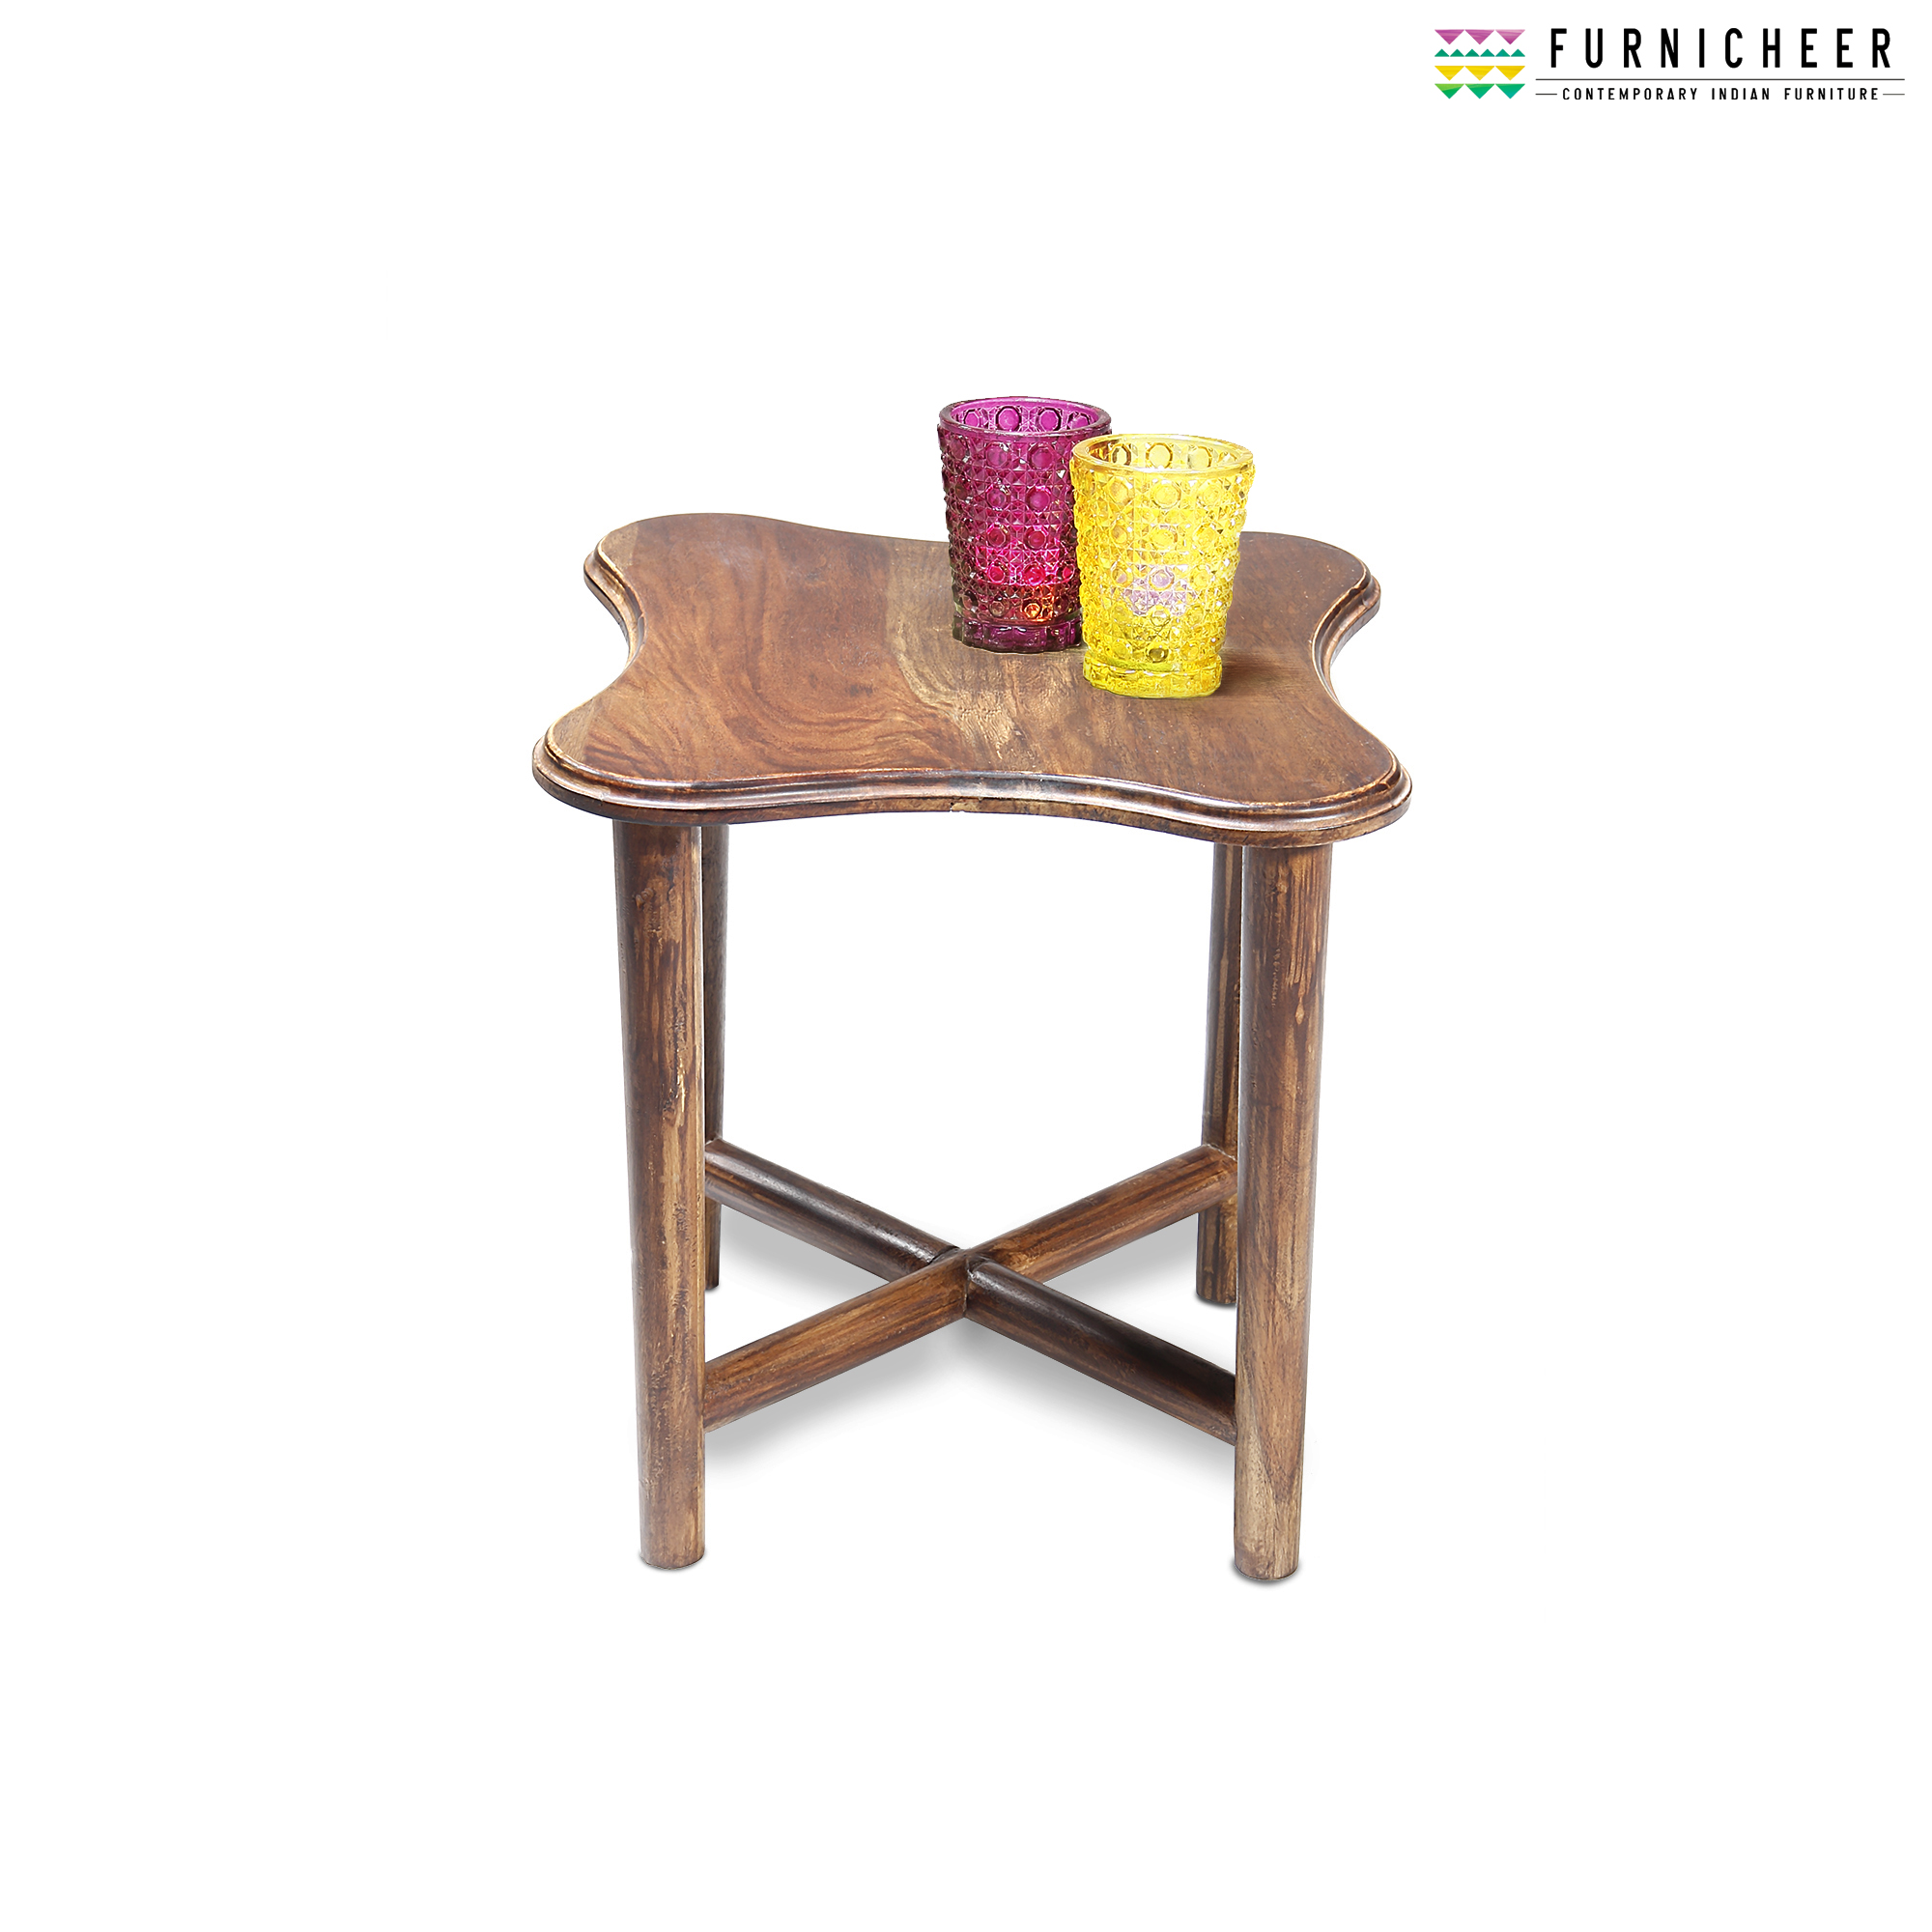 1.SIDE & END TABLE SKU TBBX7482